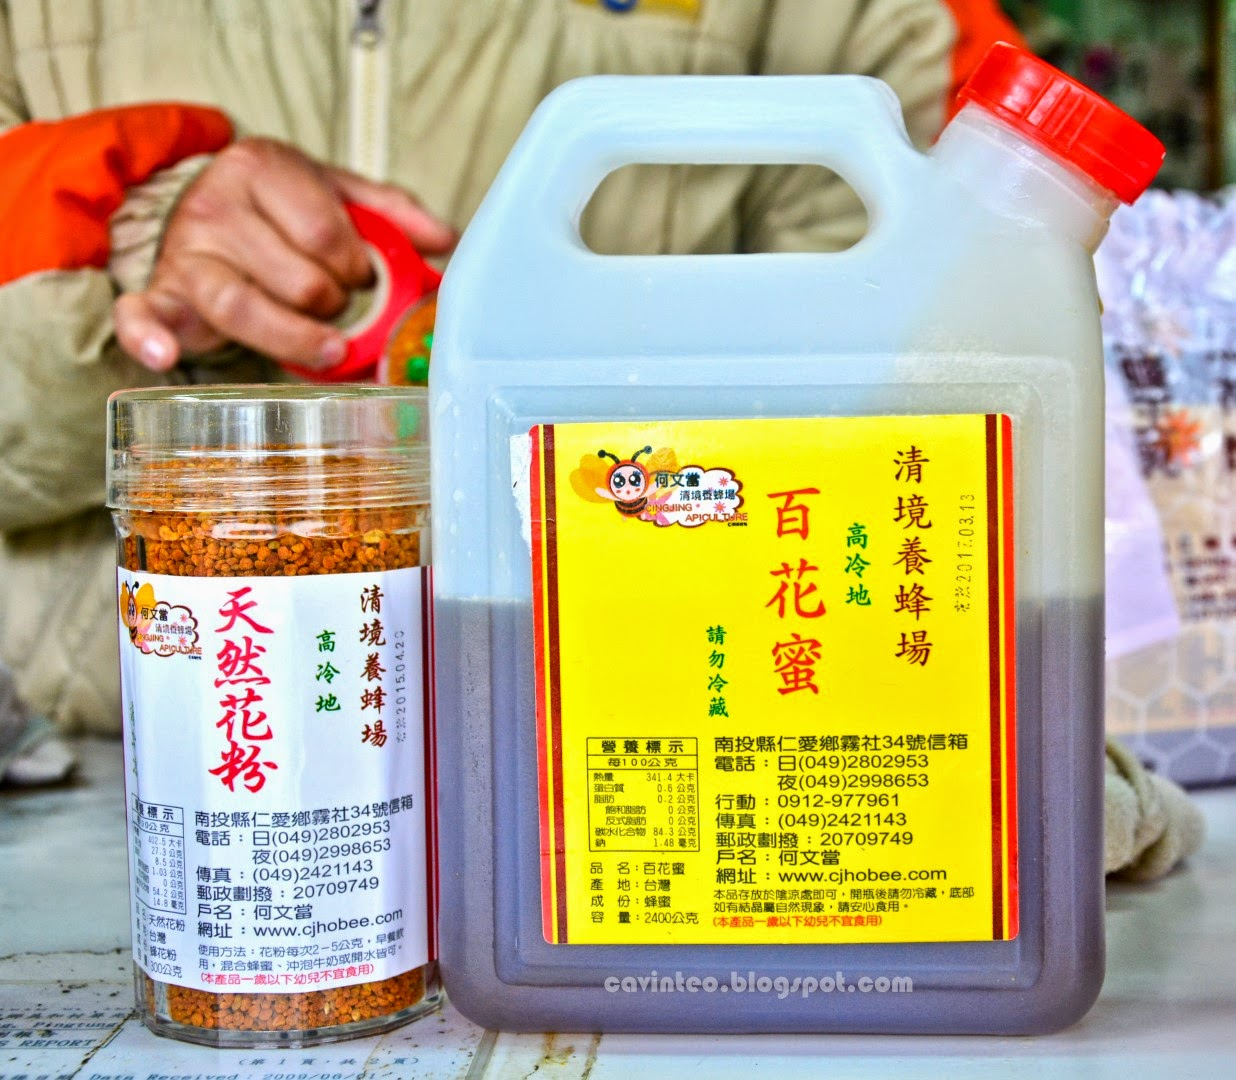 08 Damn Worth It Natural Raw Honey And Pollen Cingjing Honey Apiculture Large